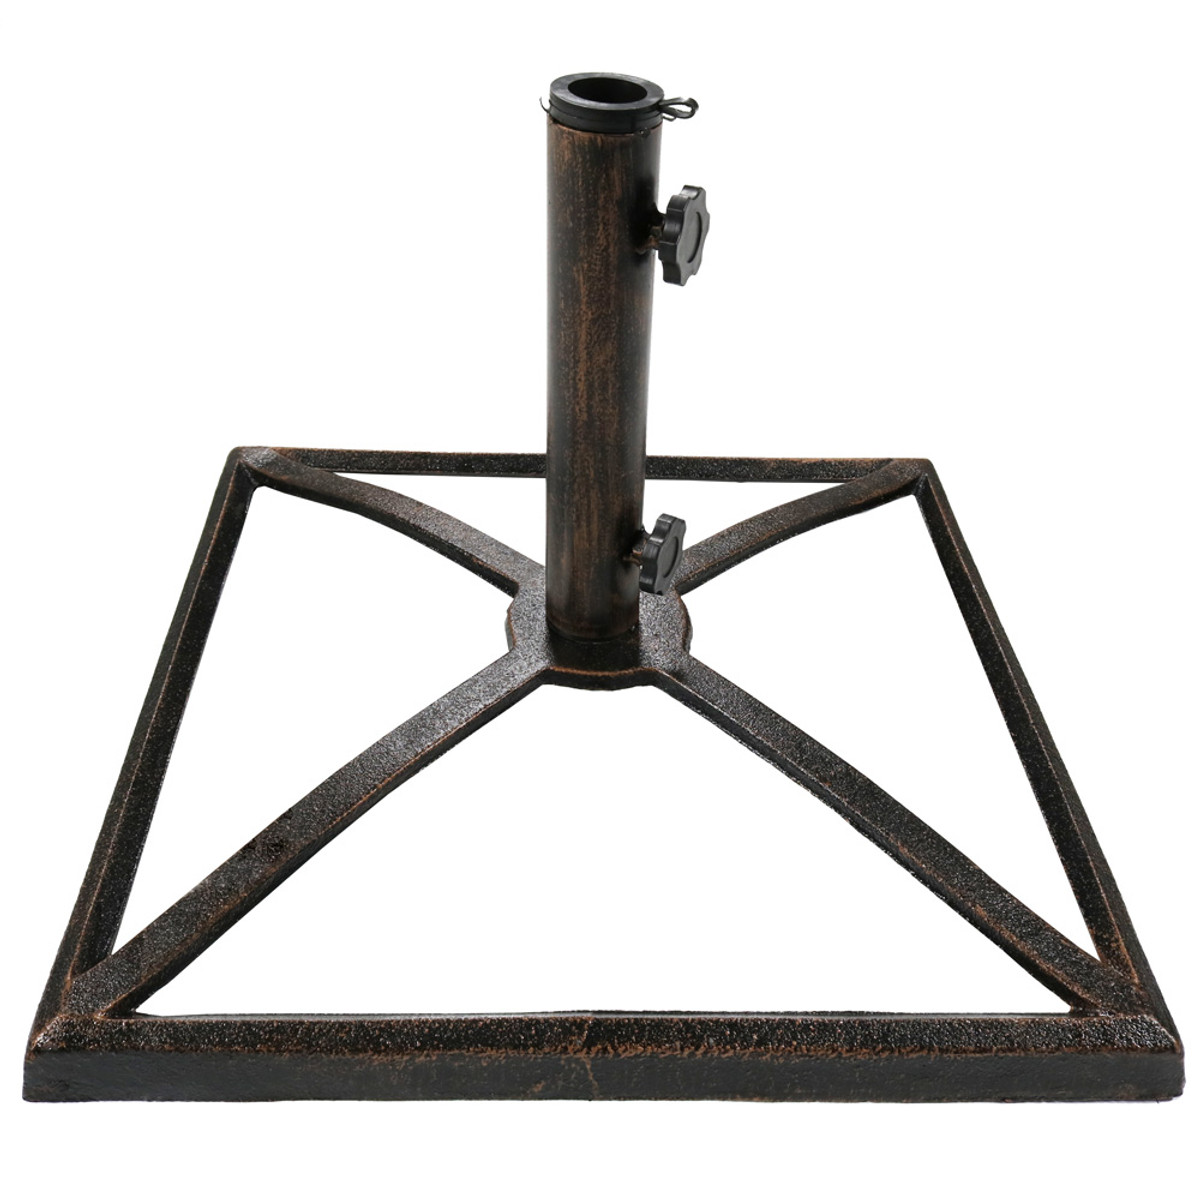 sunnydaze square bronze cast iron outdoor patio umbrella base stand 2 Inch Umbrella Base